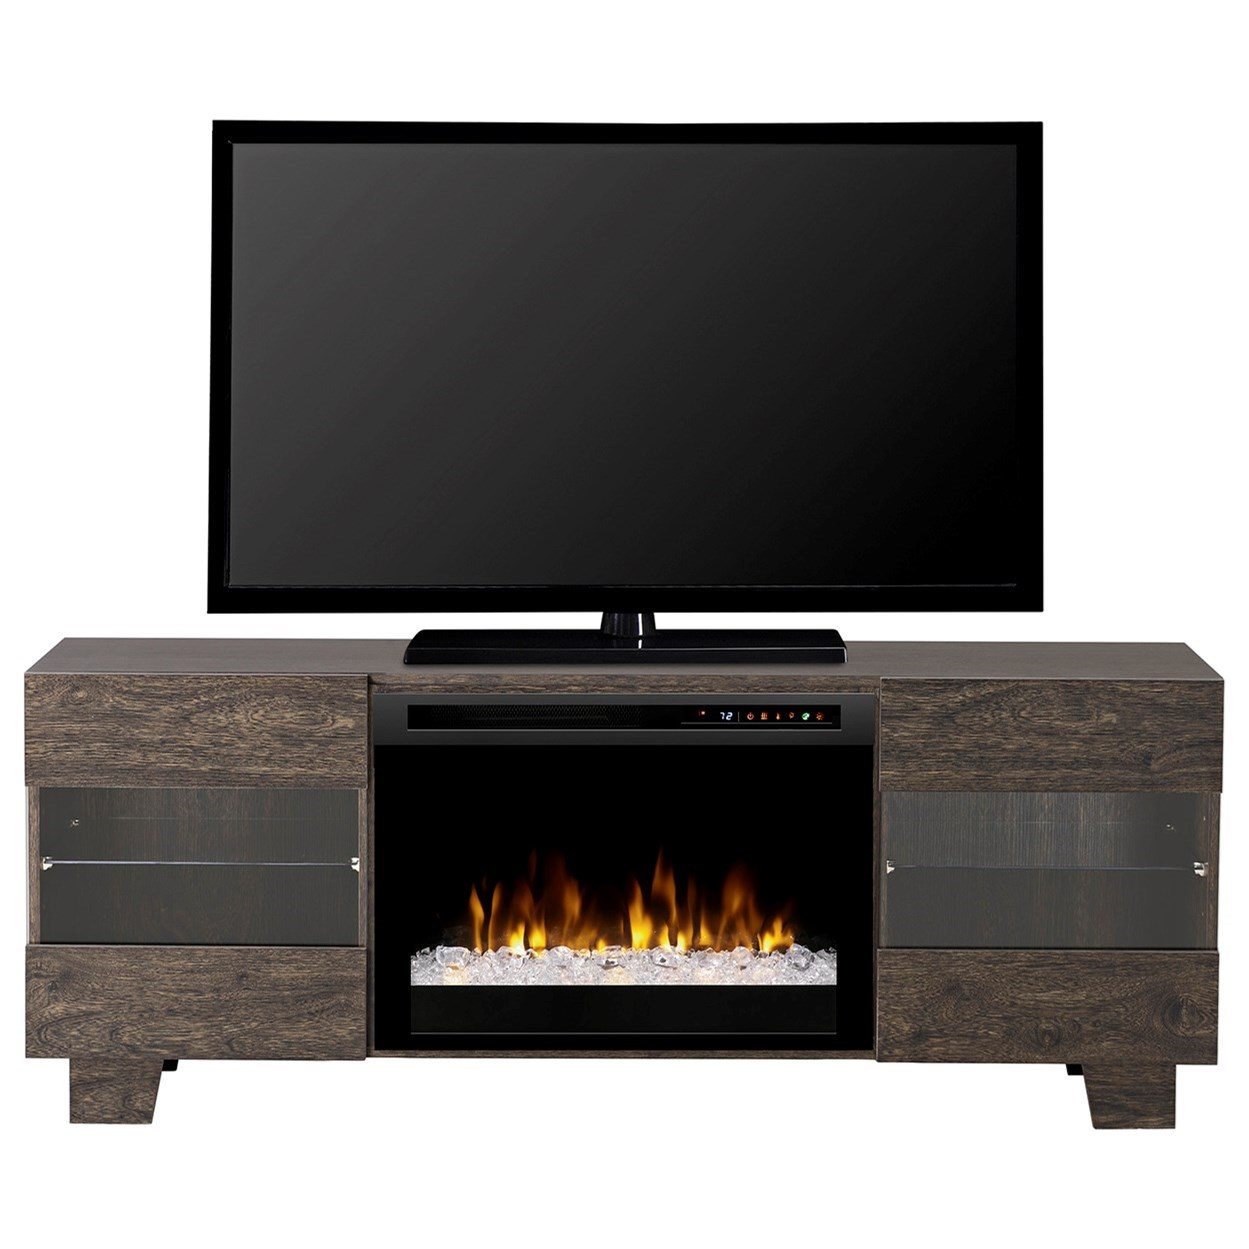 Media Console Fireplaces Max Acrylic Ice Media Mantel Fireplace by Dimplex at Jordan's Home Furnishings